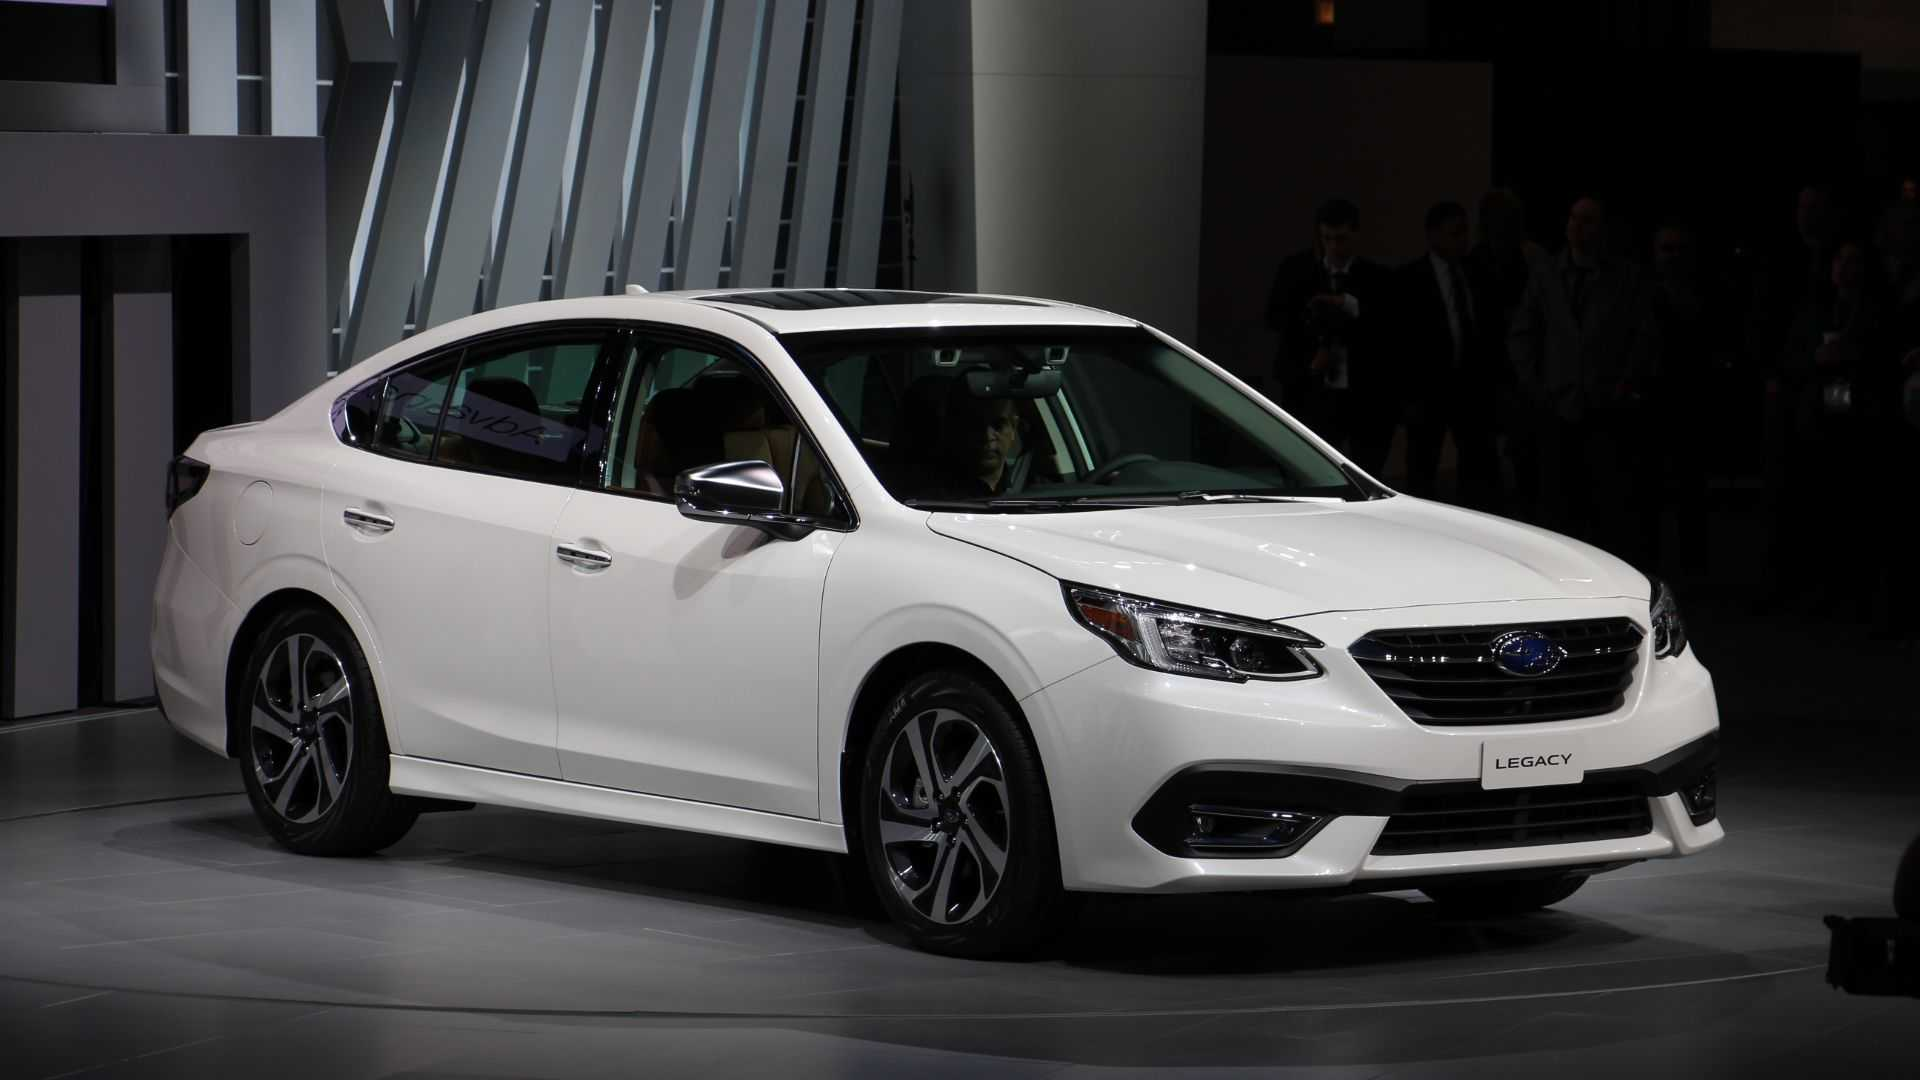 65 All New 2020 Subaru Legacy Mpg Prices